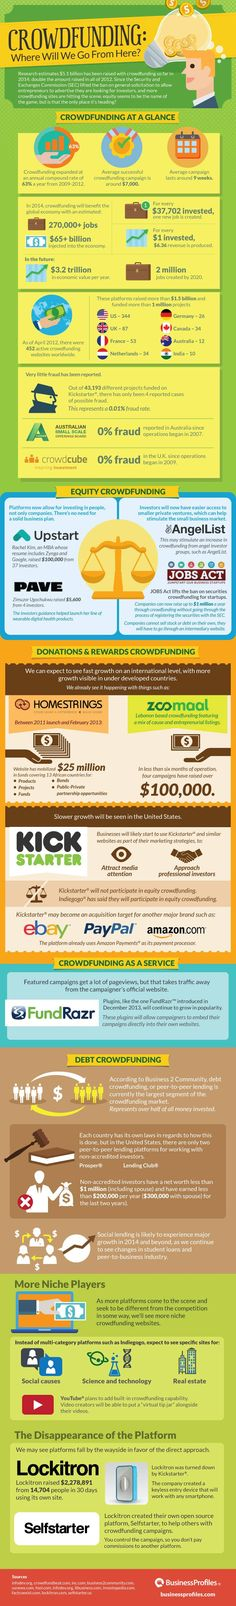 Where Crowdfunding Will Go from Here [Infographic]